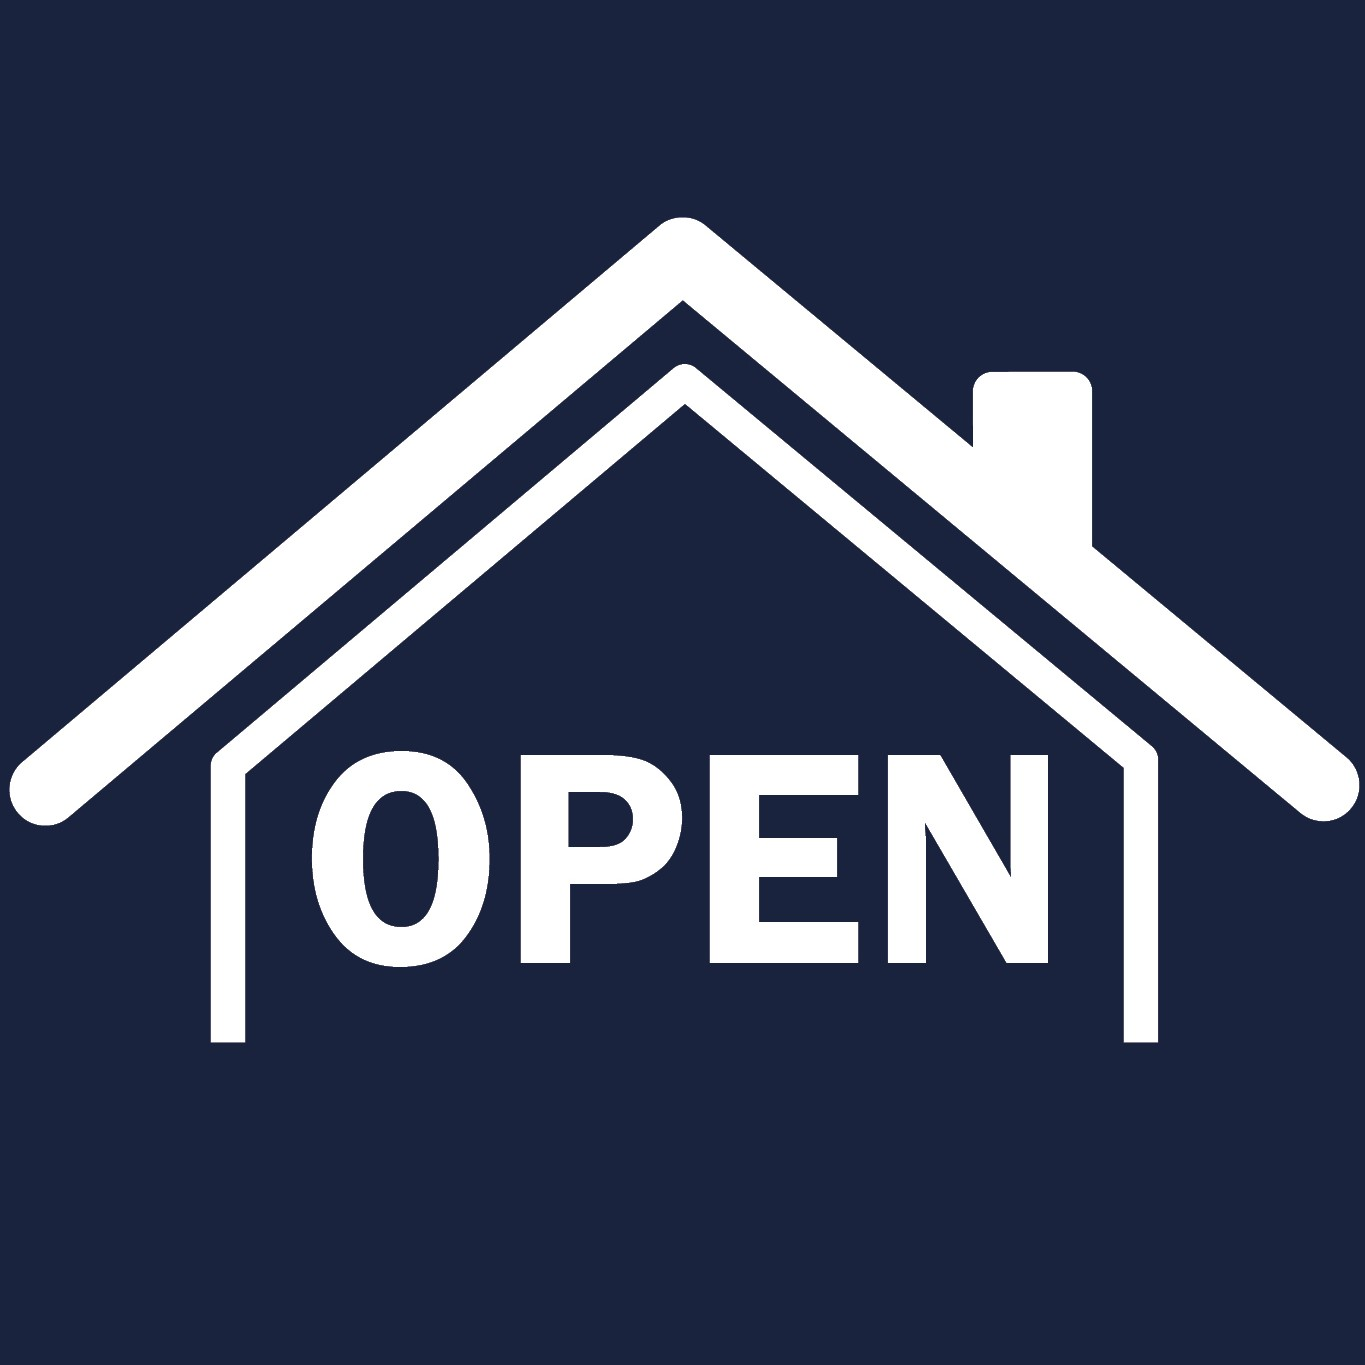 OPEN HOUSE THE LINK icon